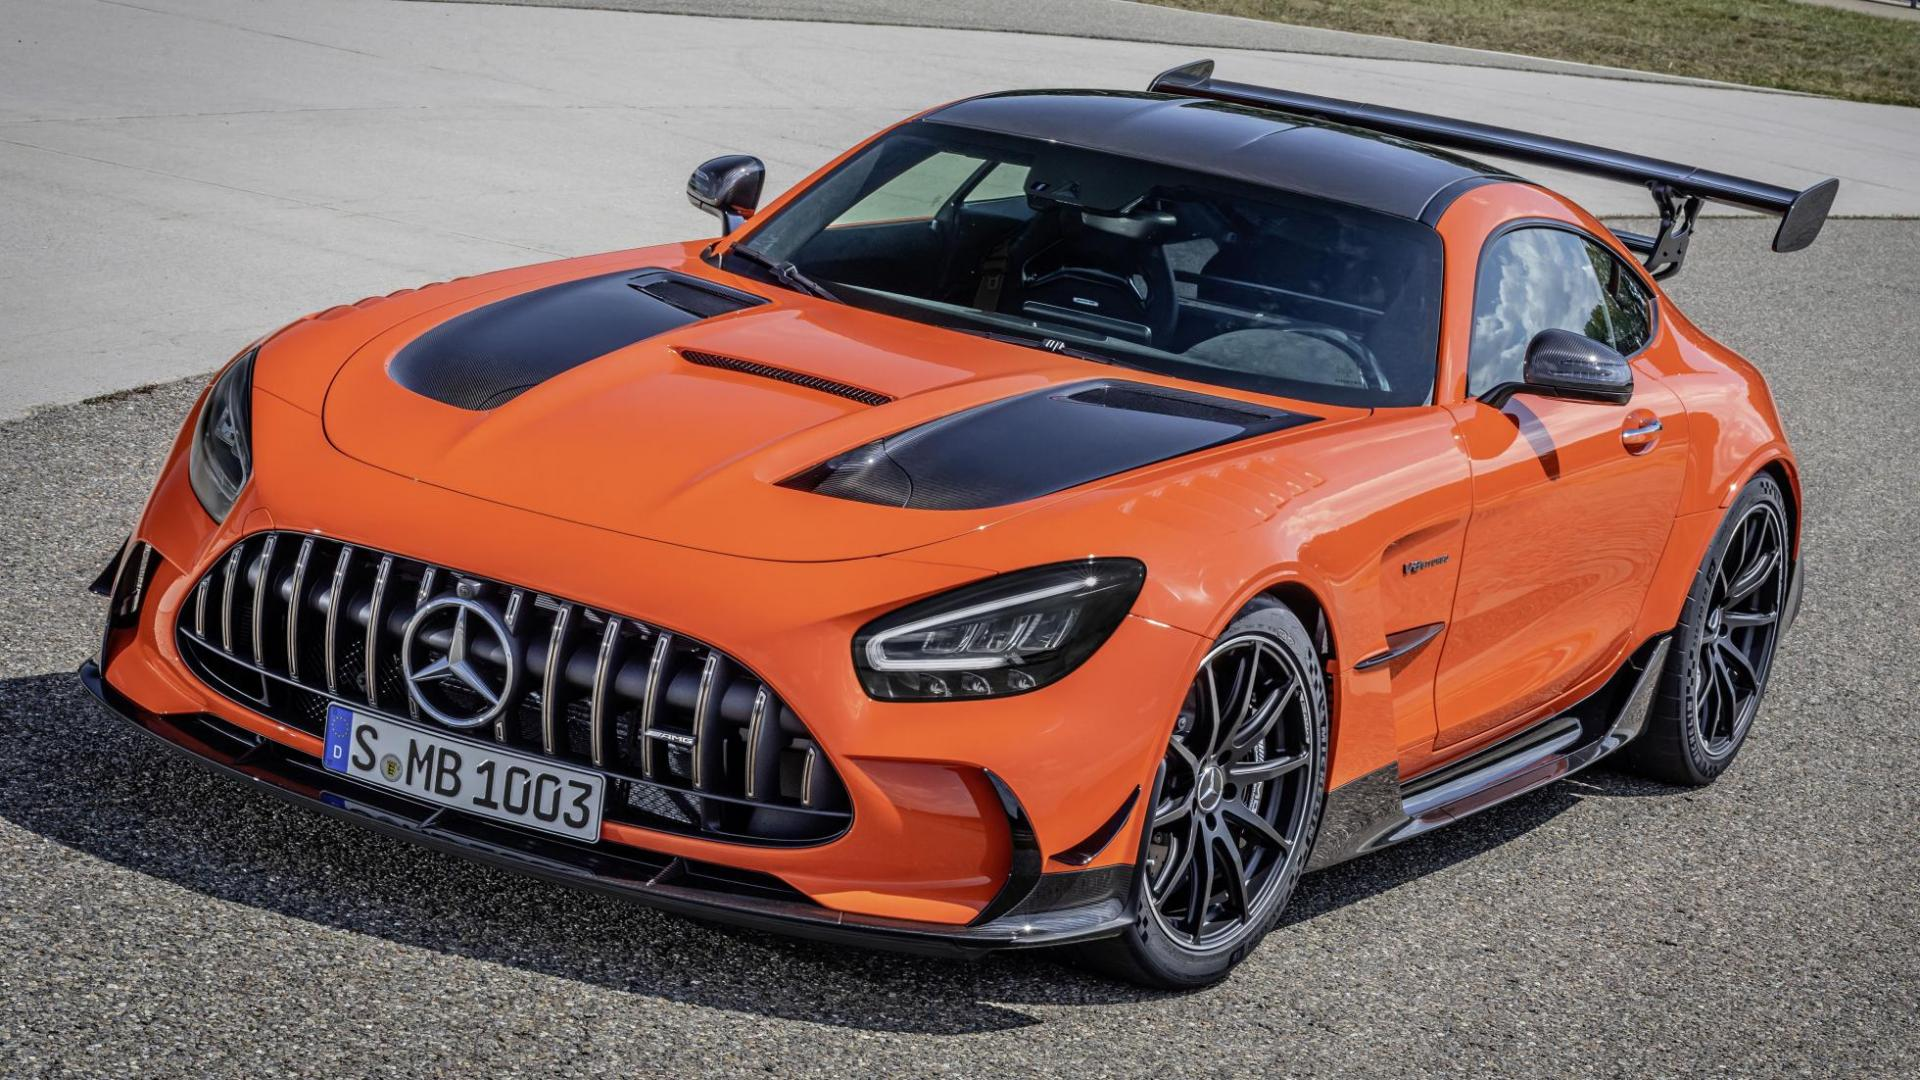 Prijs Mercedes-AMG GT Black Series in Magma Orange (2020)